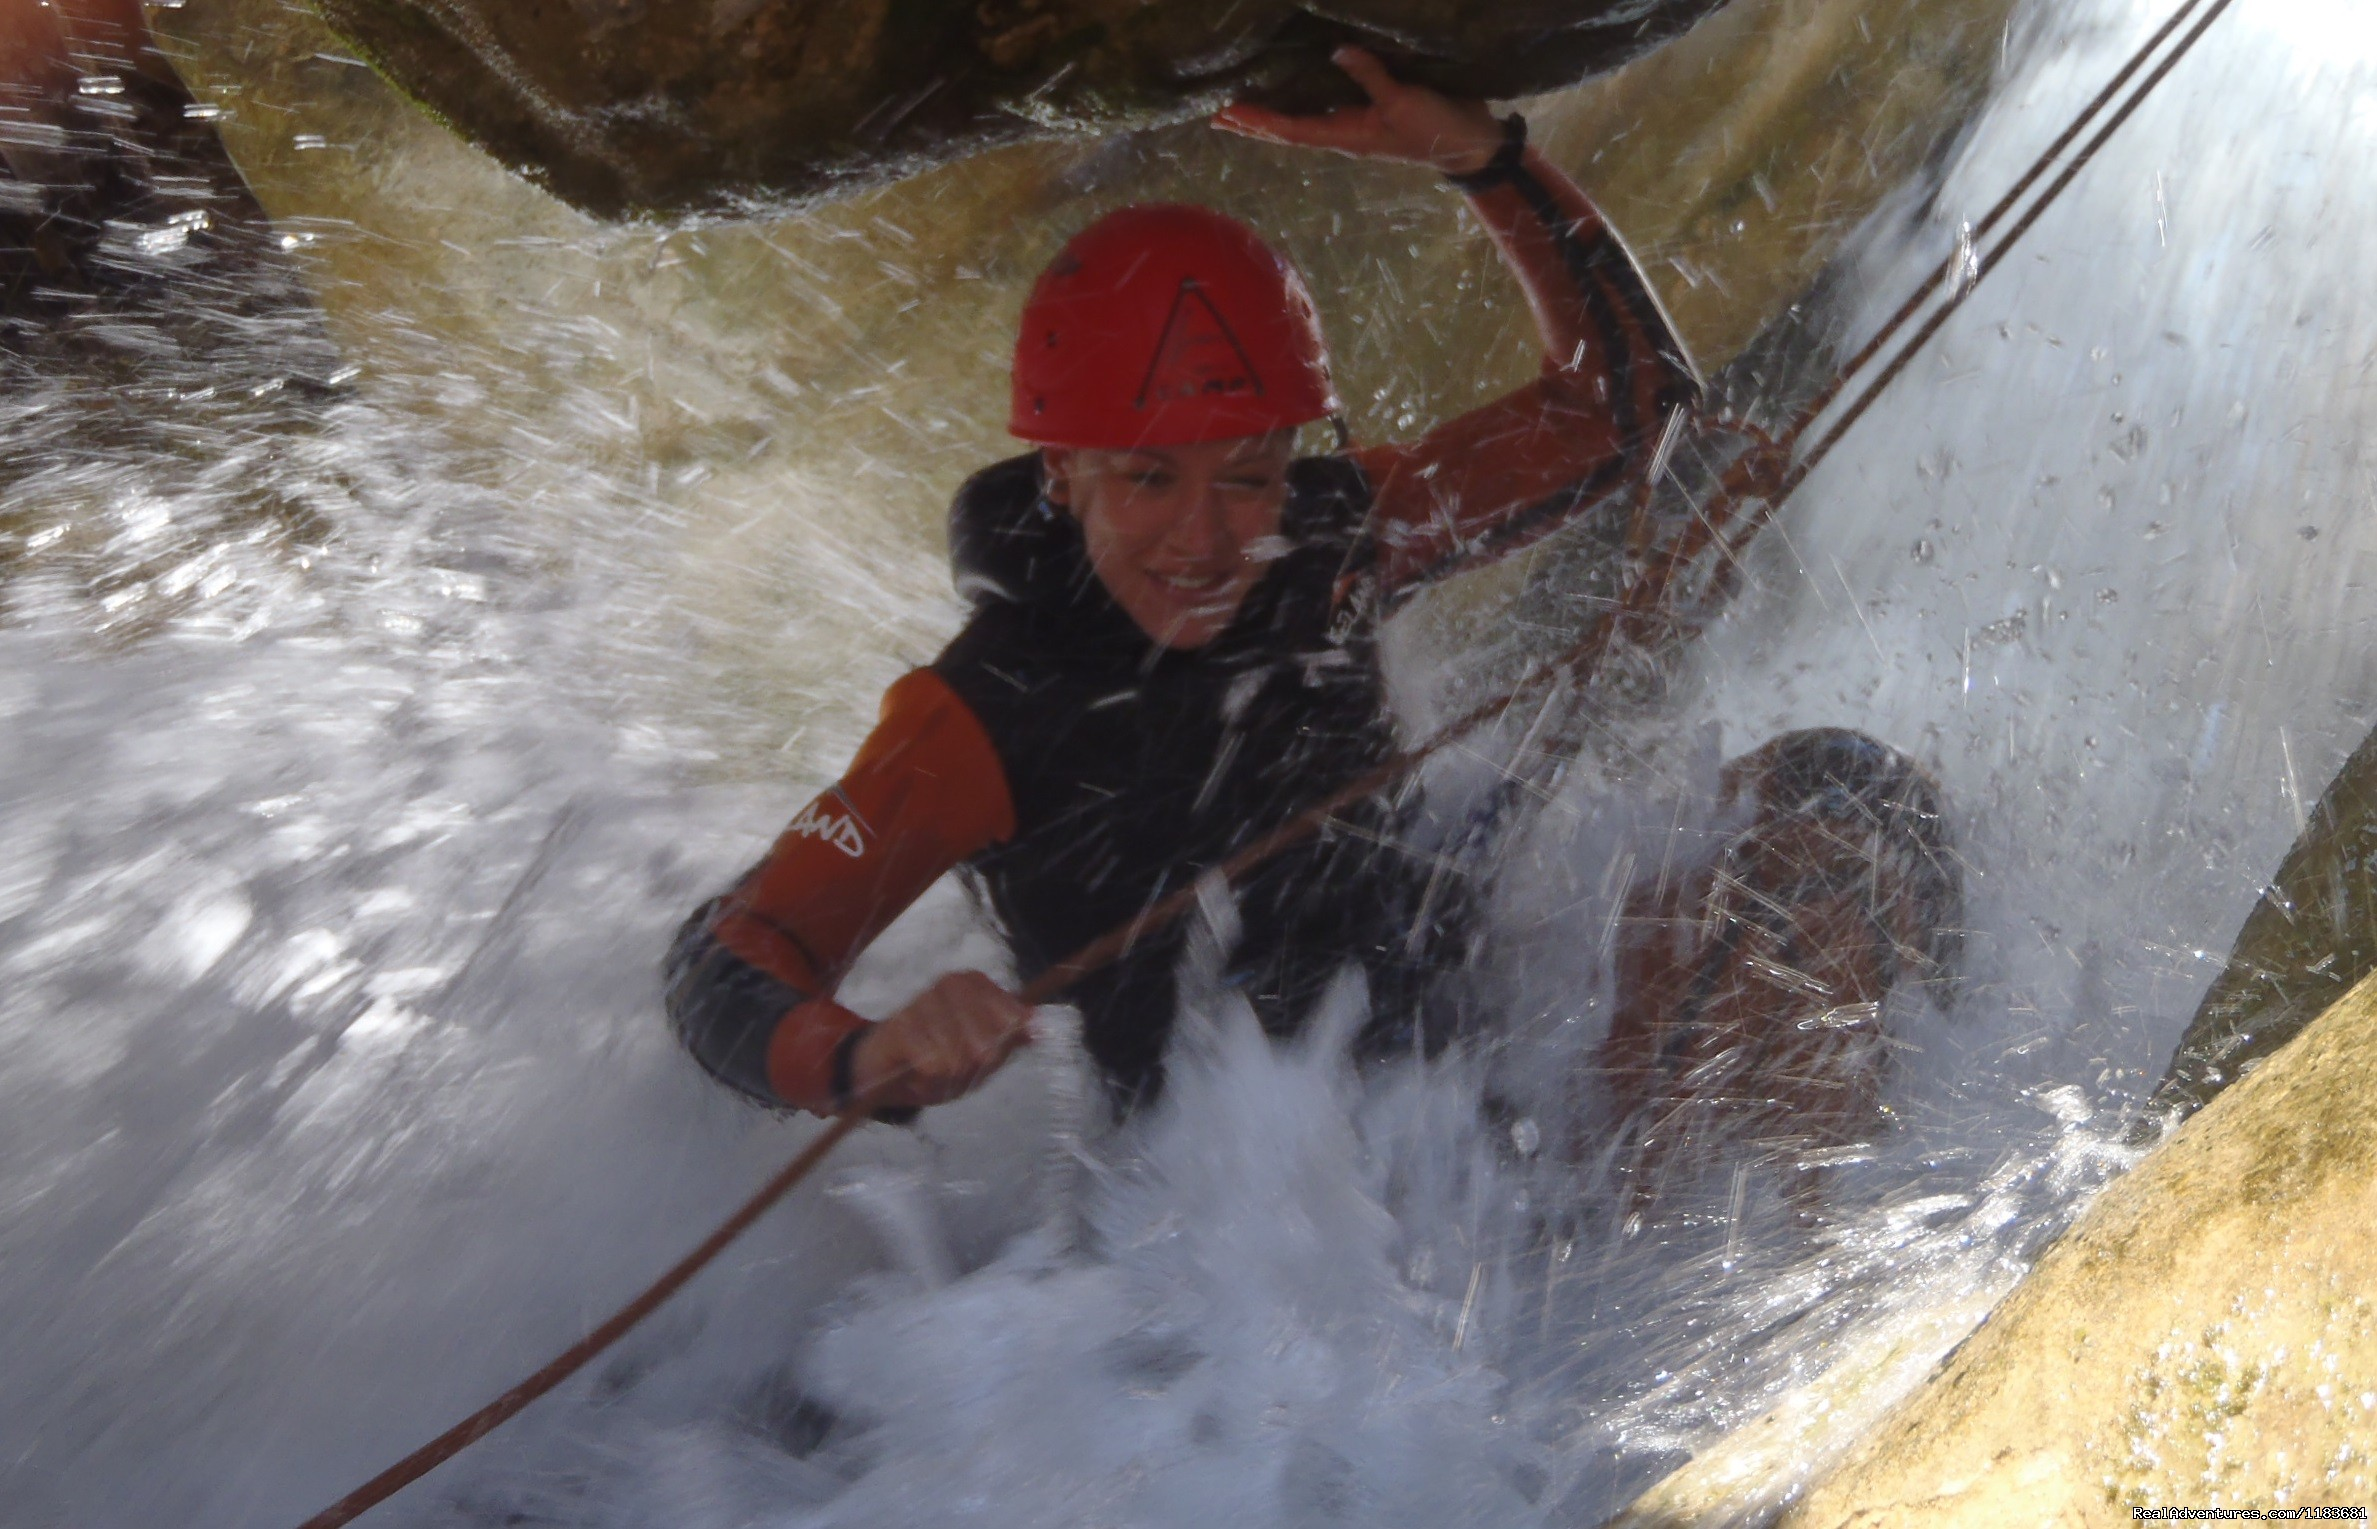 Easy abseiling under water... Big emotion